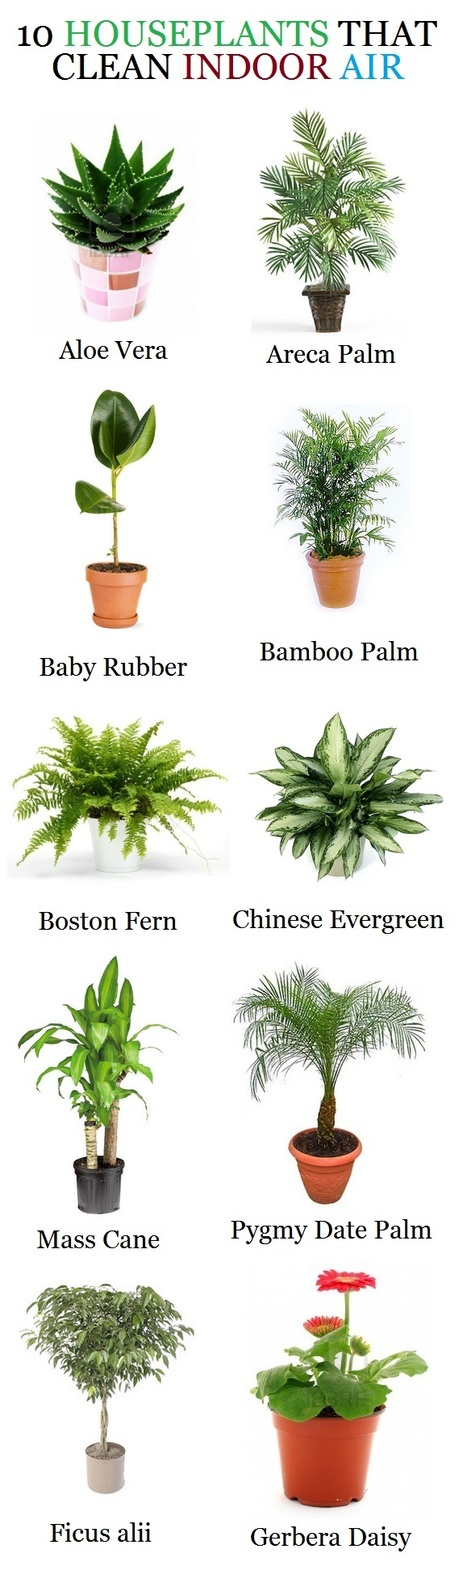 10 HOUSEPLANTS THAT CLEAN INDOOR AIR   Corporate intervention on Climate Change   Scoop.it